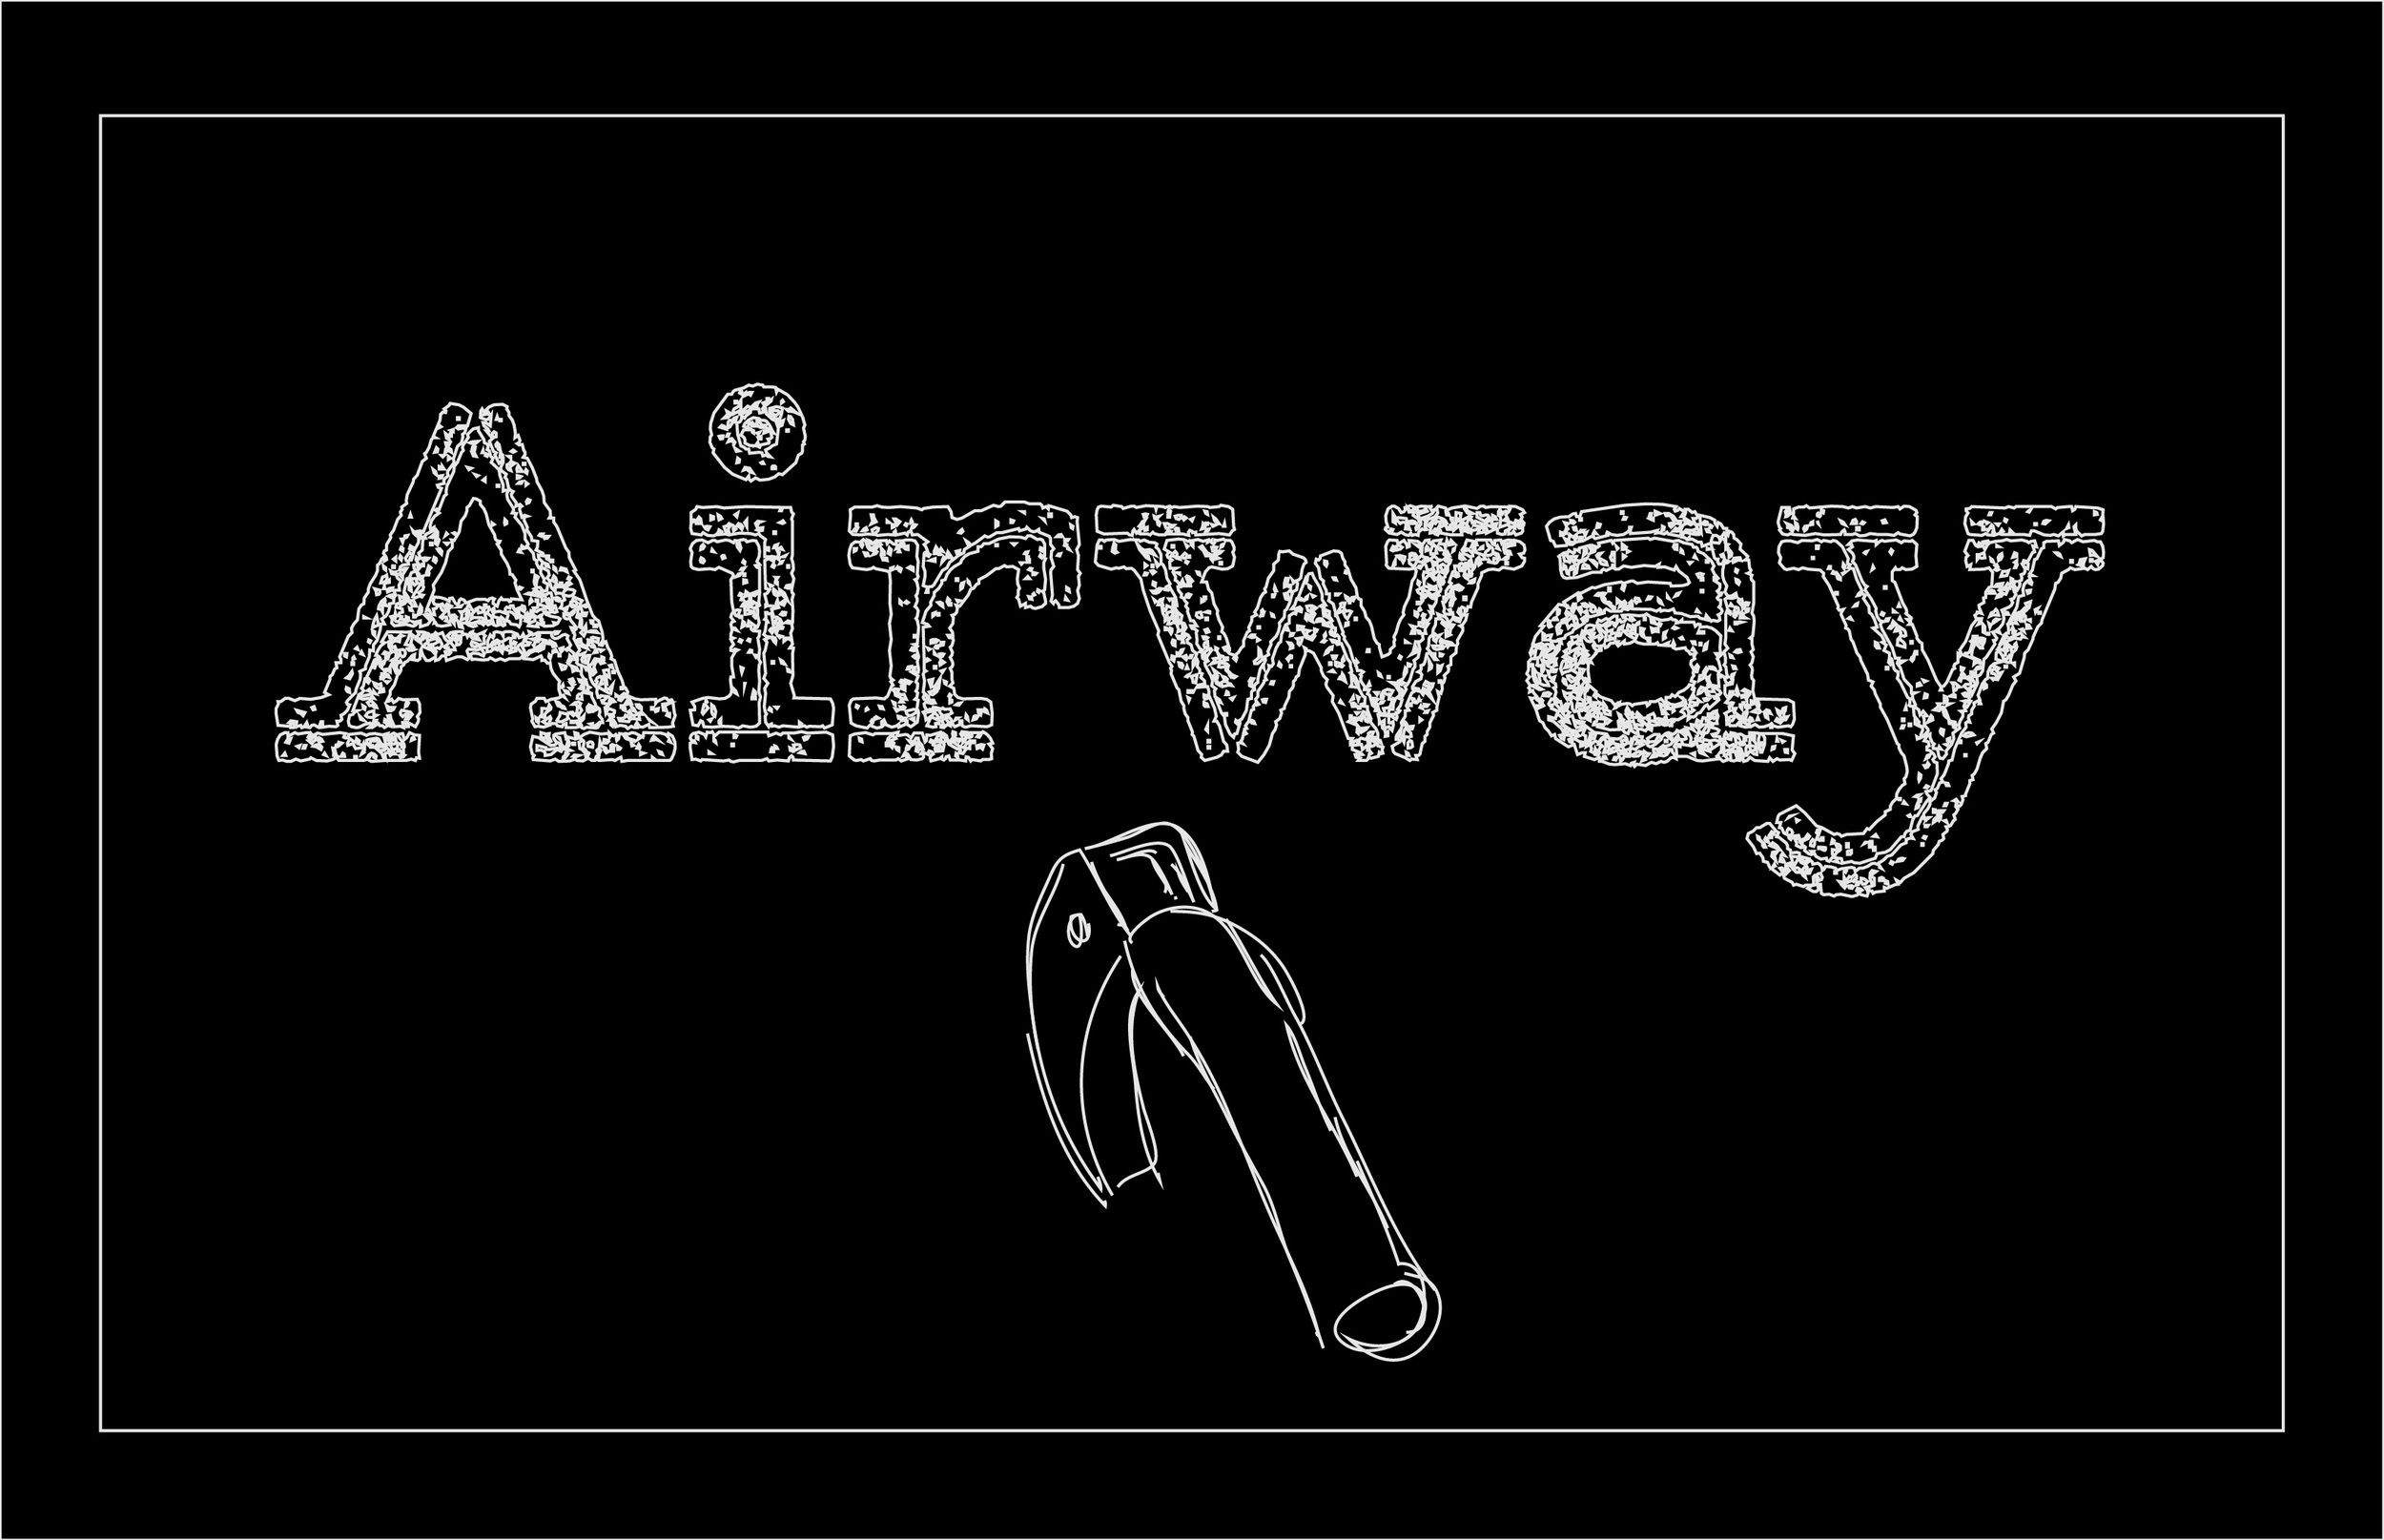 AirwayMain-02.jpg